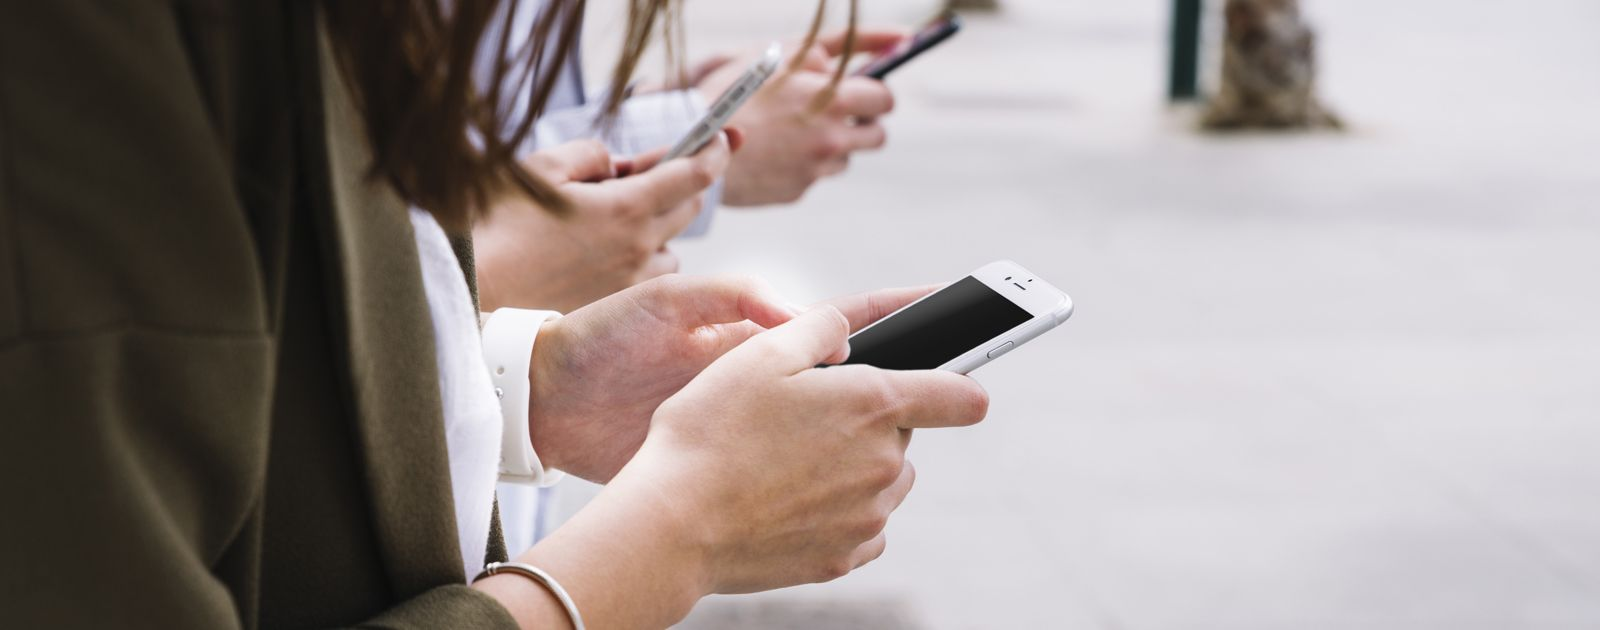 three-people-using-cell-phone-outdoors_movil_cabecera